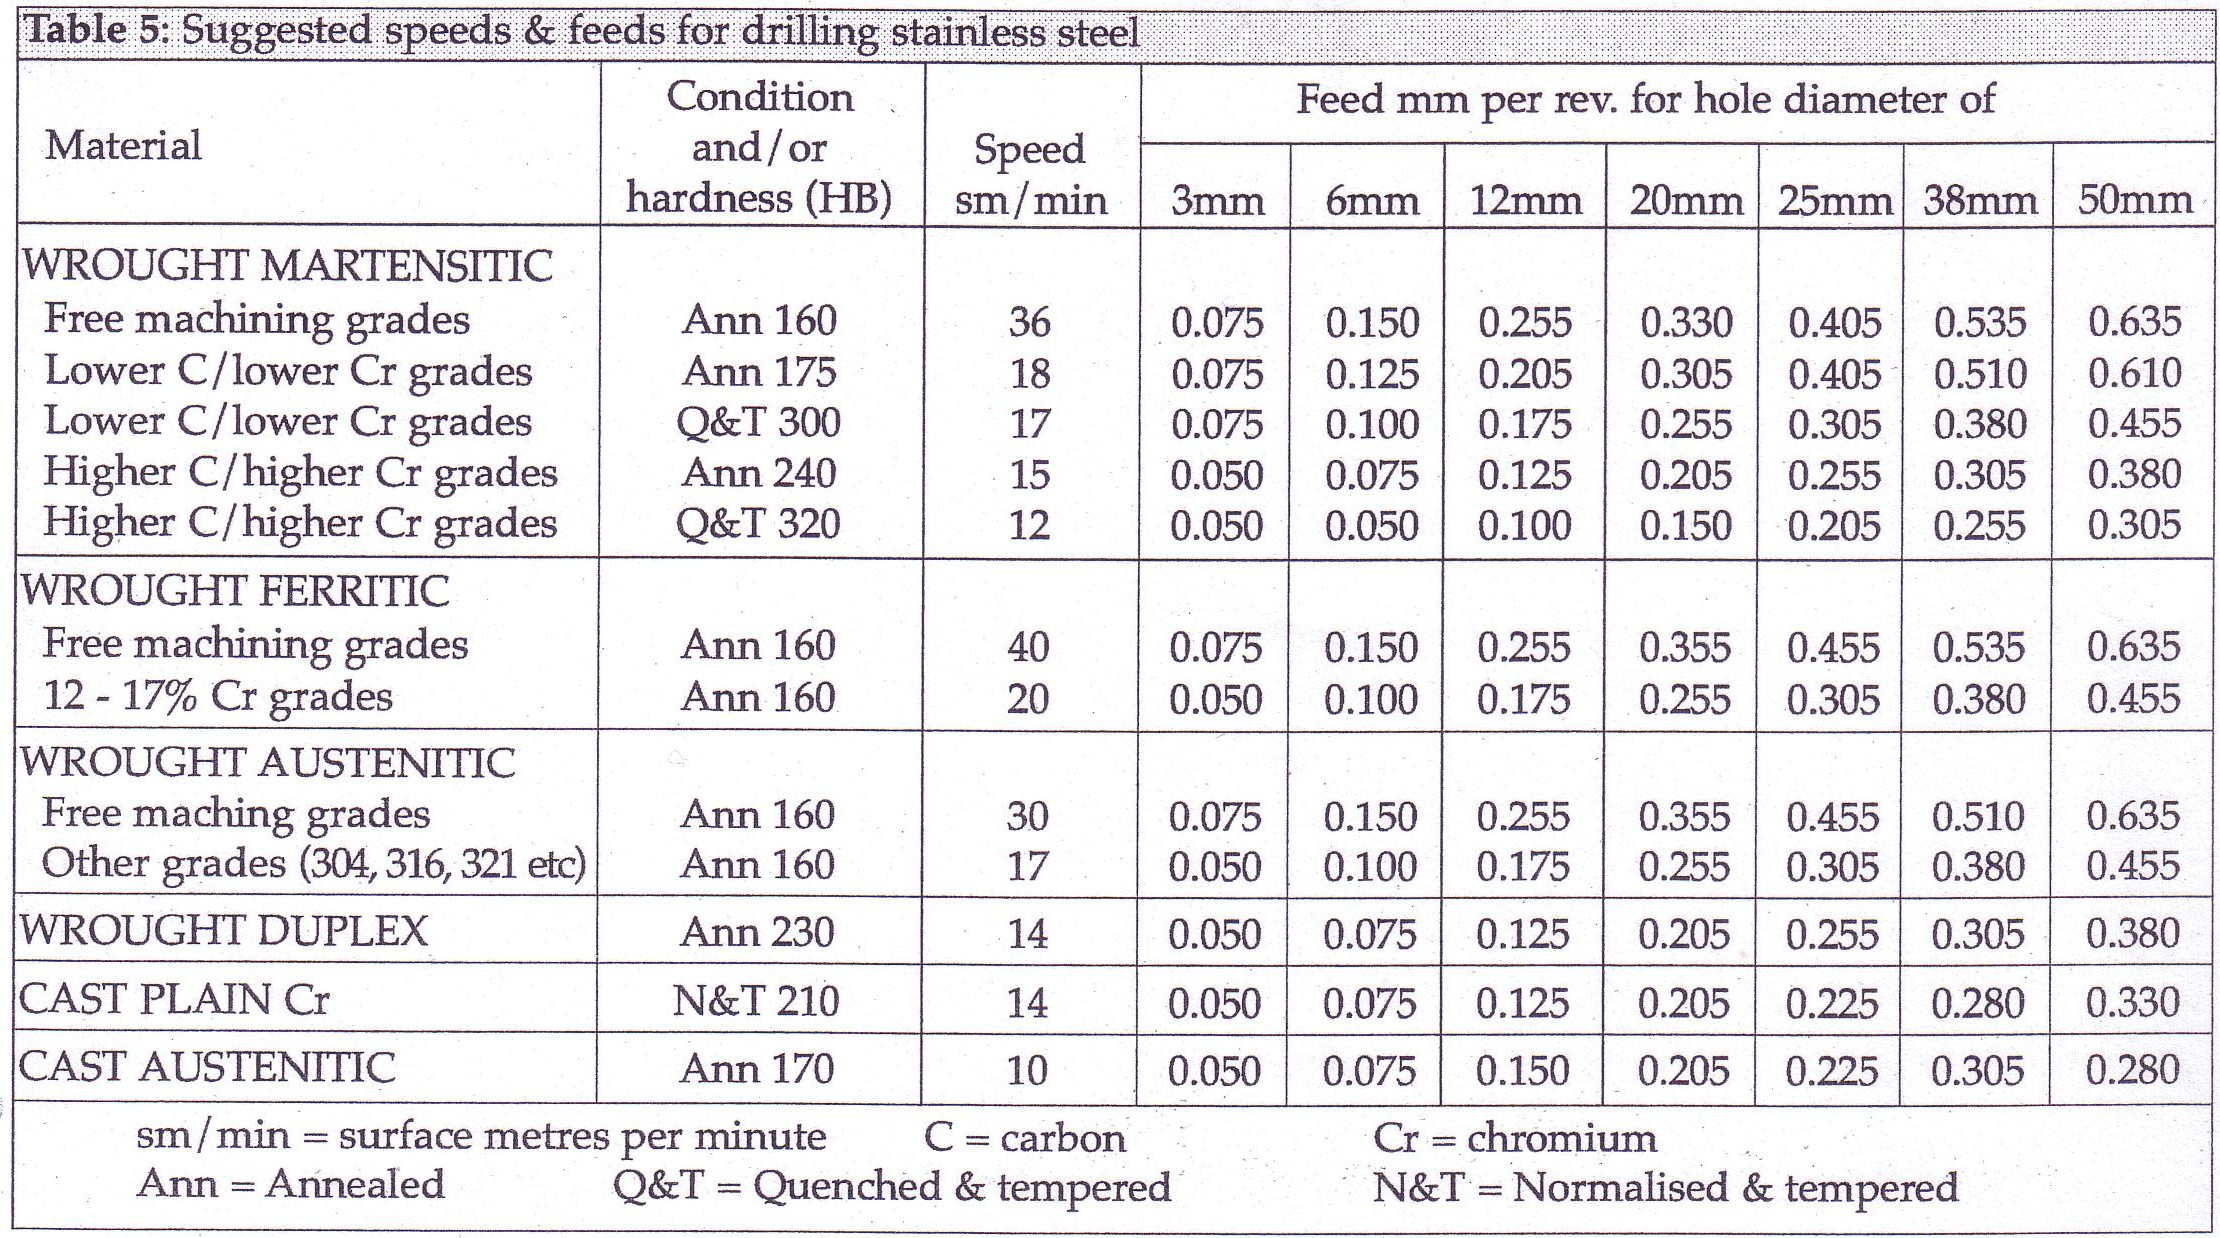 Speeds and feeds for drilling and reaming stainless steel nvjuhfo Choice Image